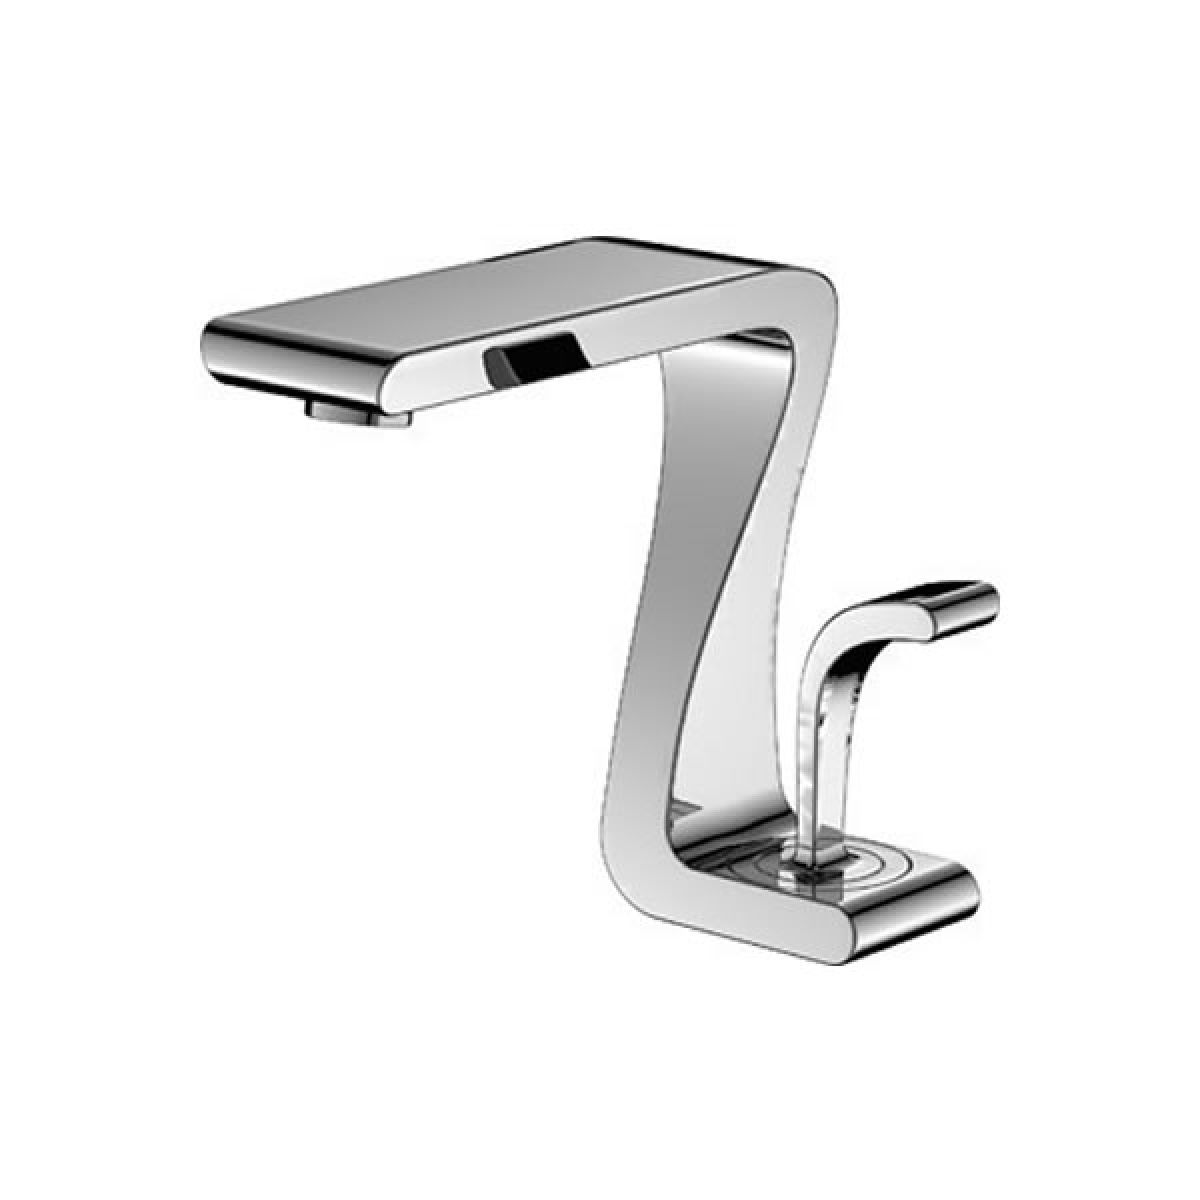 Phoenix Zelda Basin Mixer Tap Uk Bathrooms